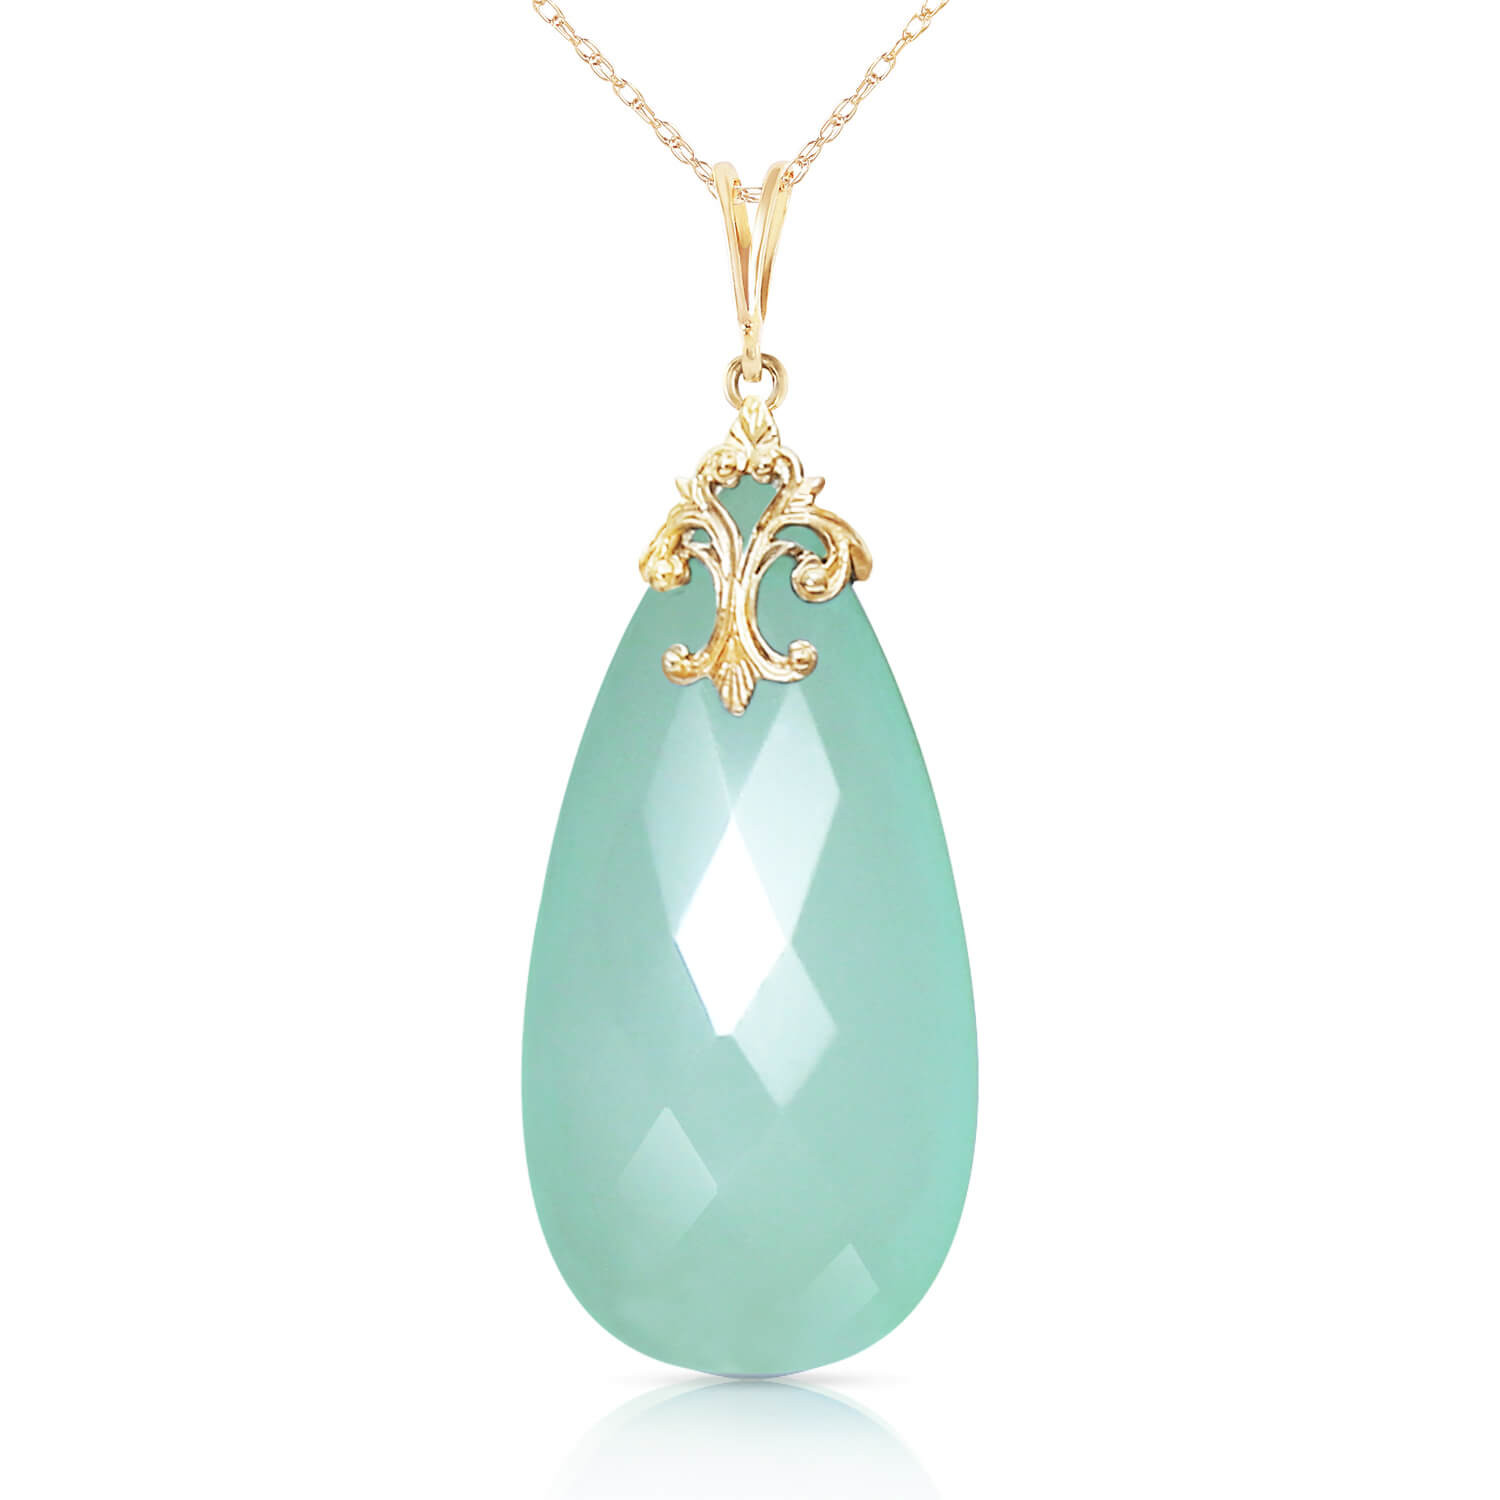 Briolette Cut Chalcedony Pendant Necklace 17.8 ct in 9ct Gold